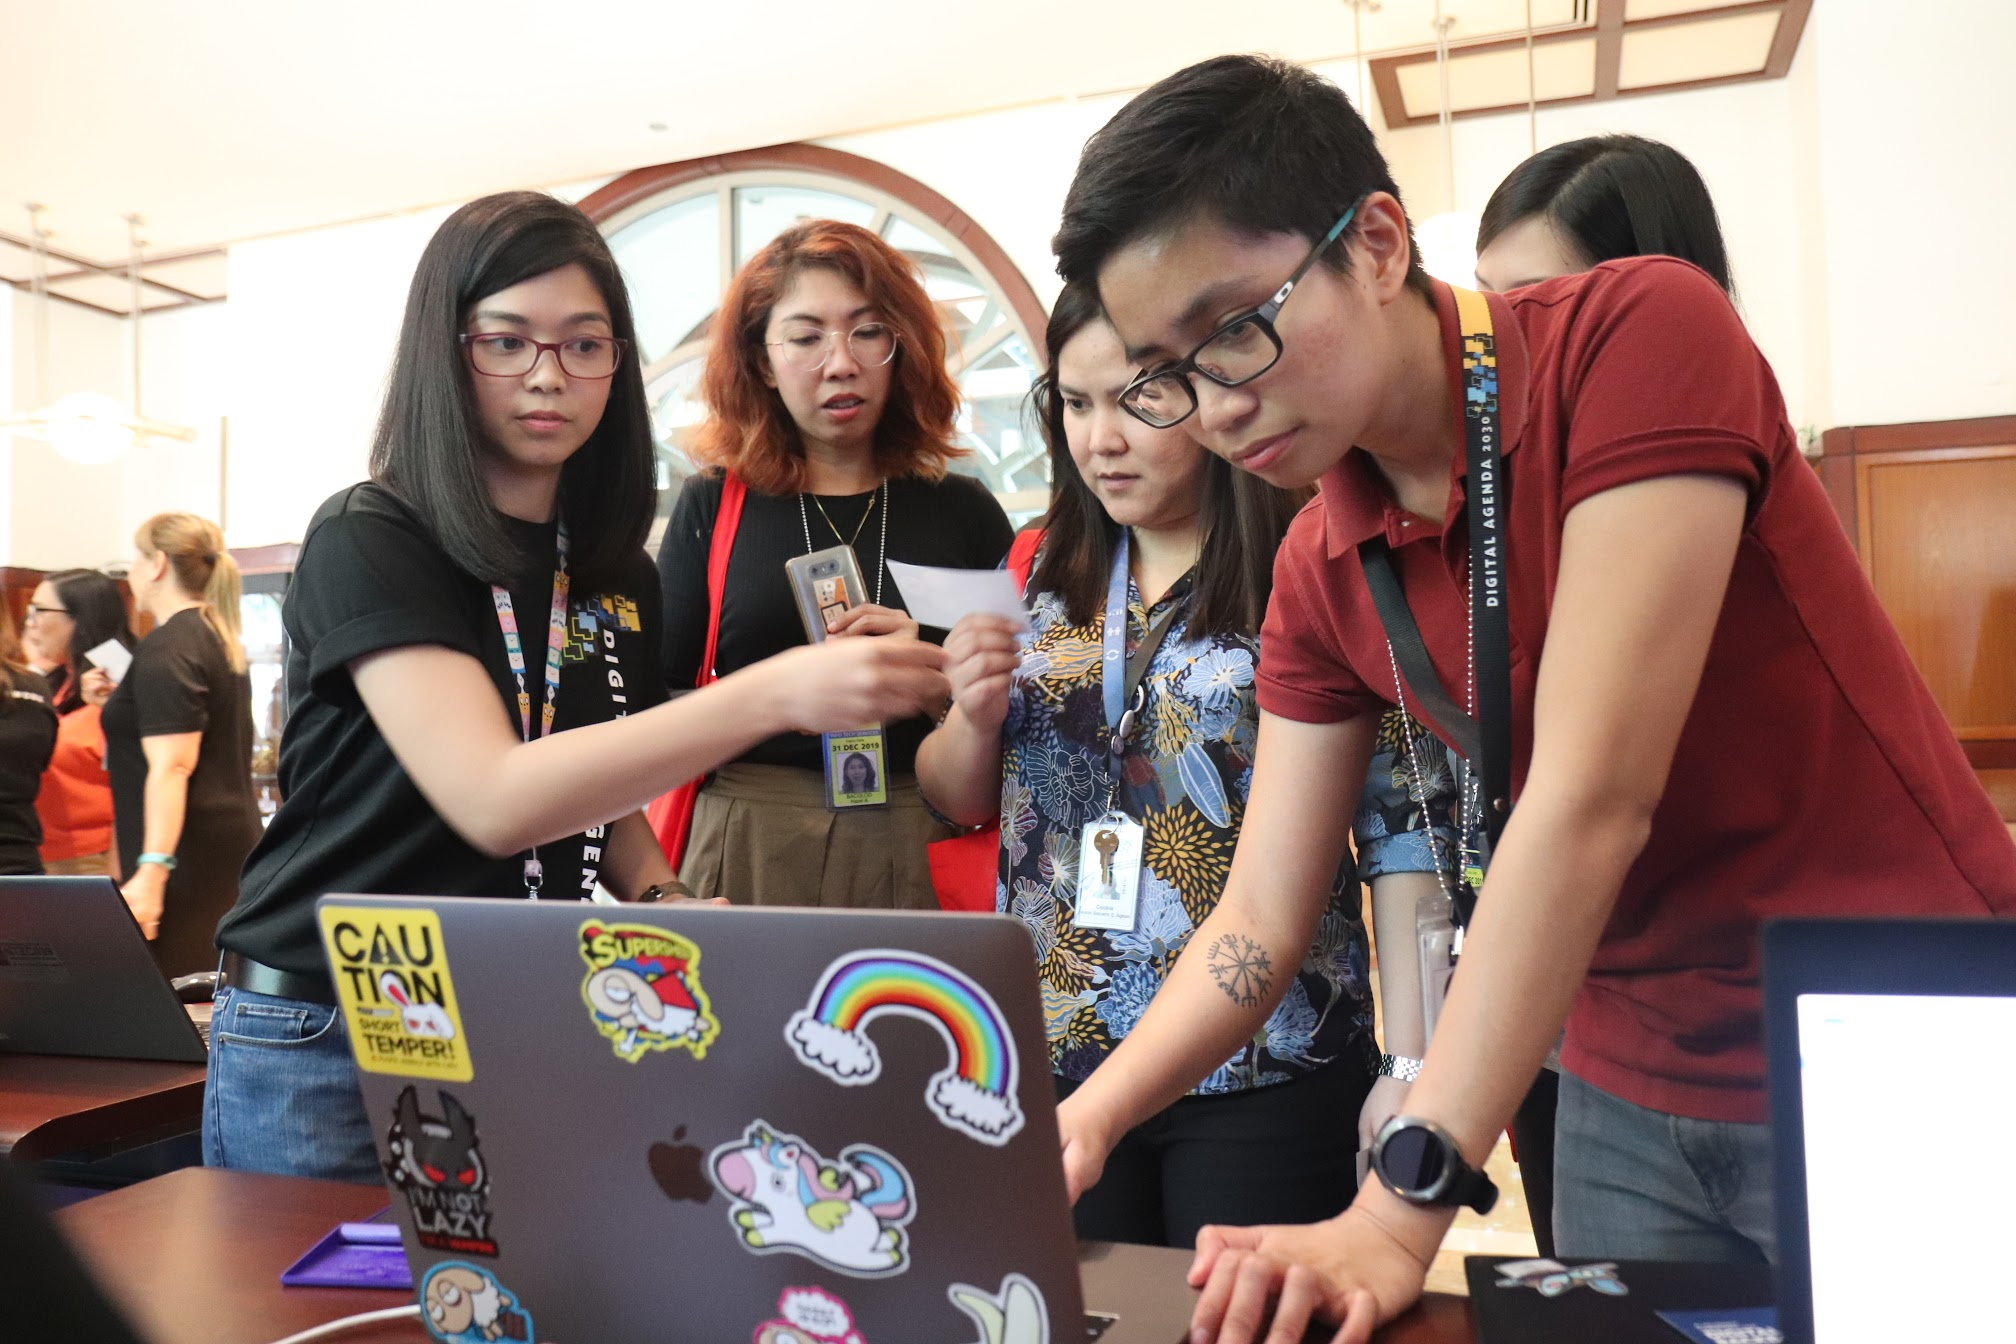 11:57 a.m. - The attendees do their best to win freebies from the booths!